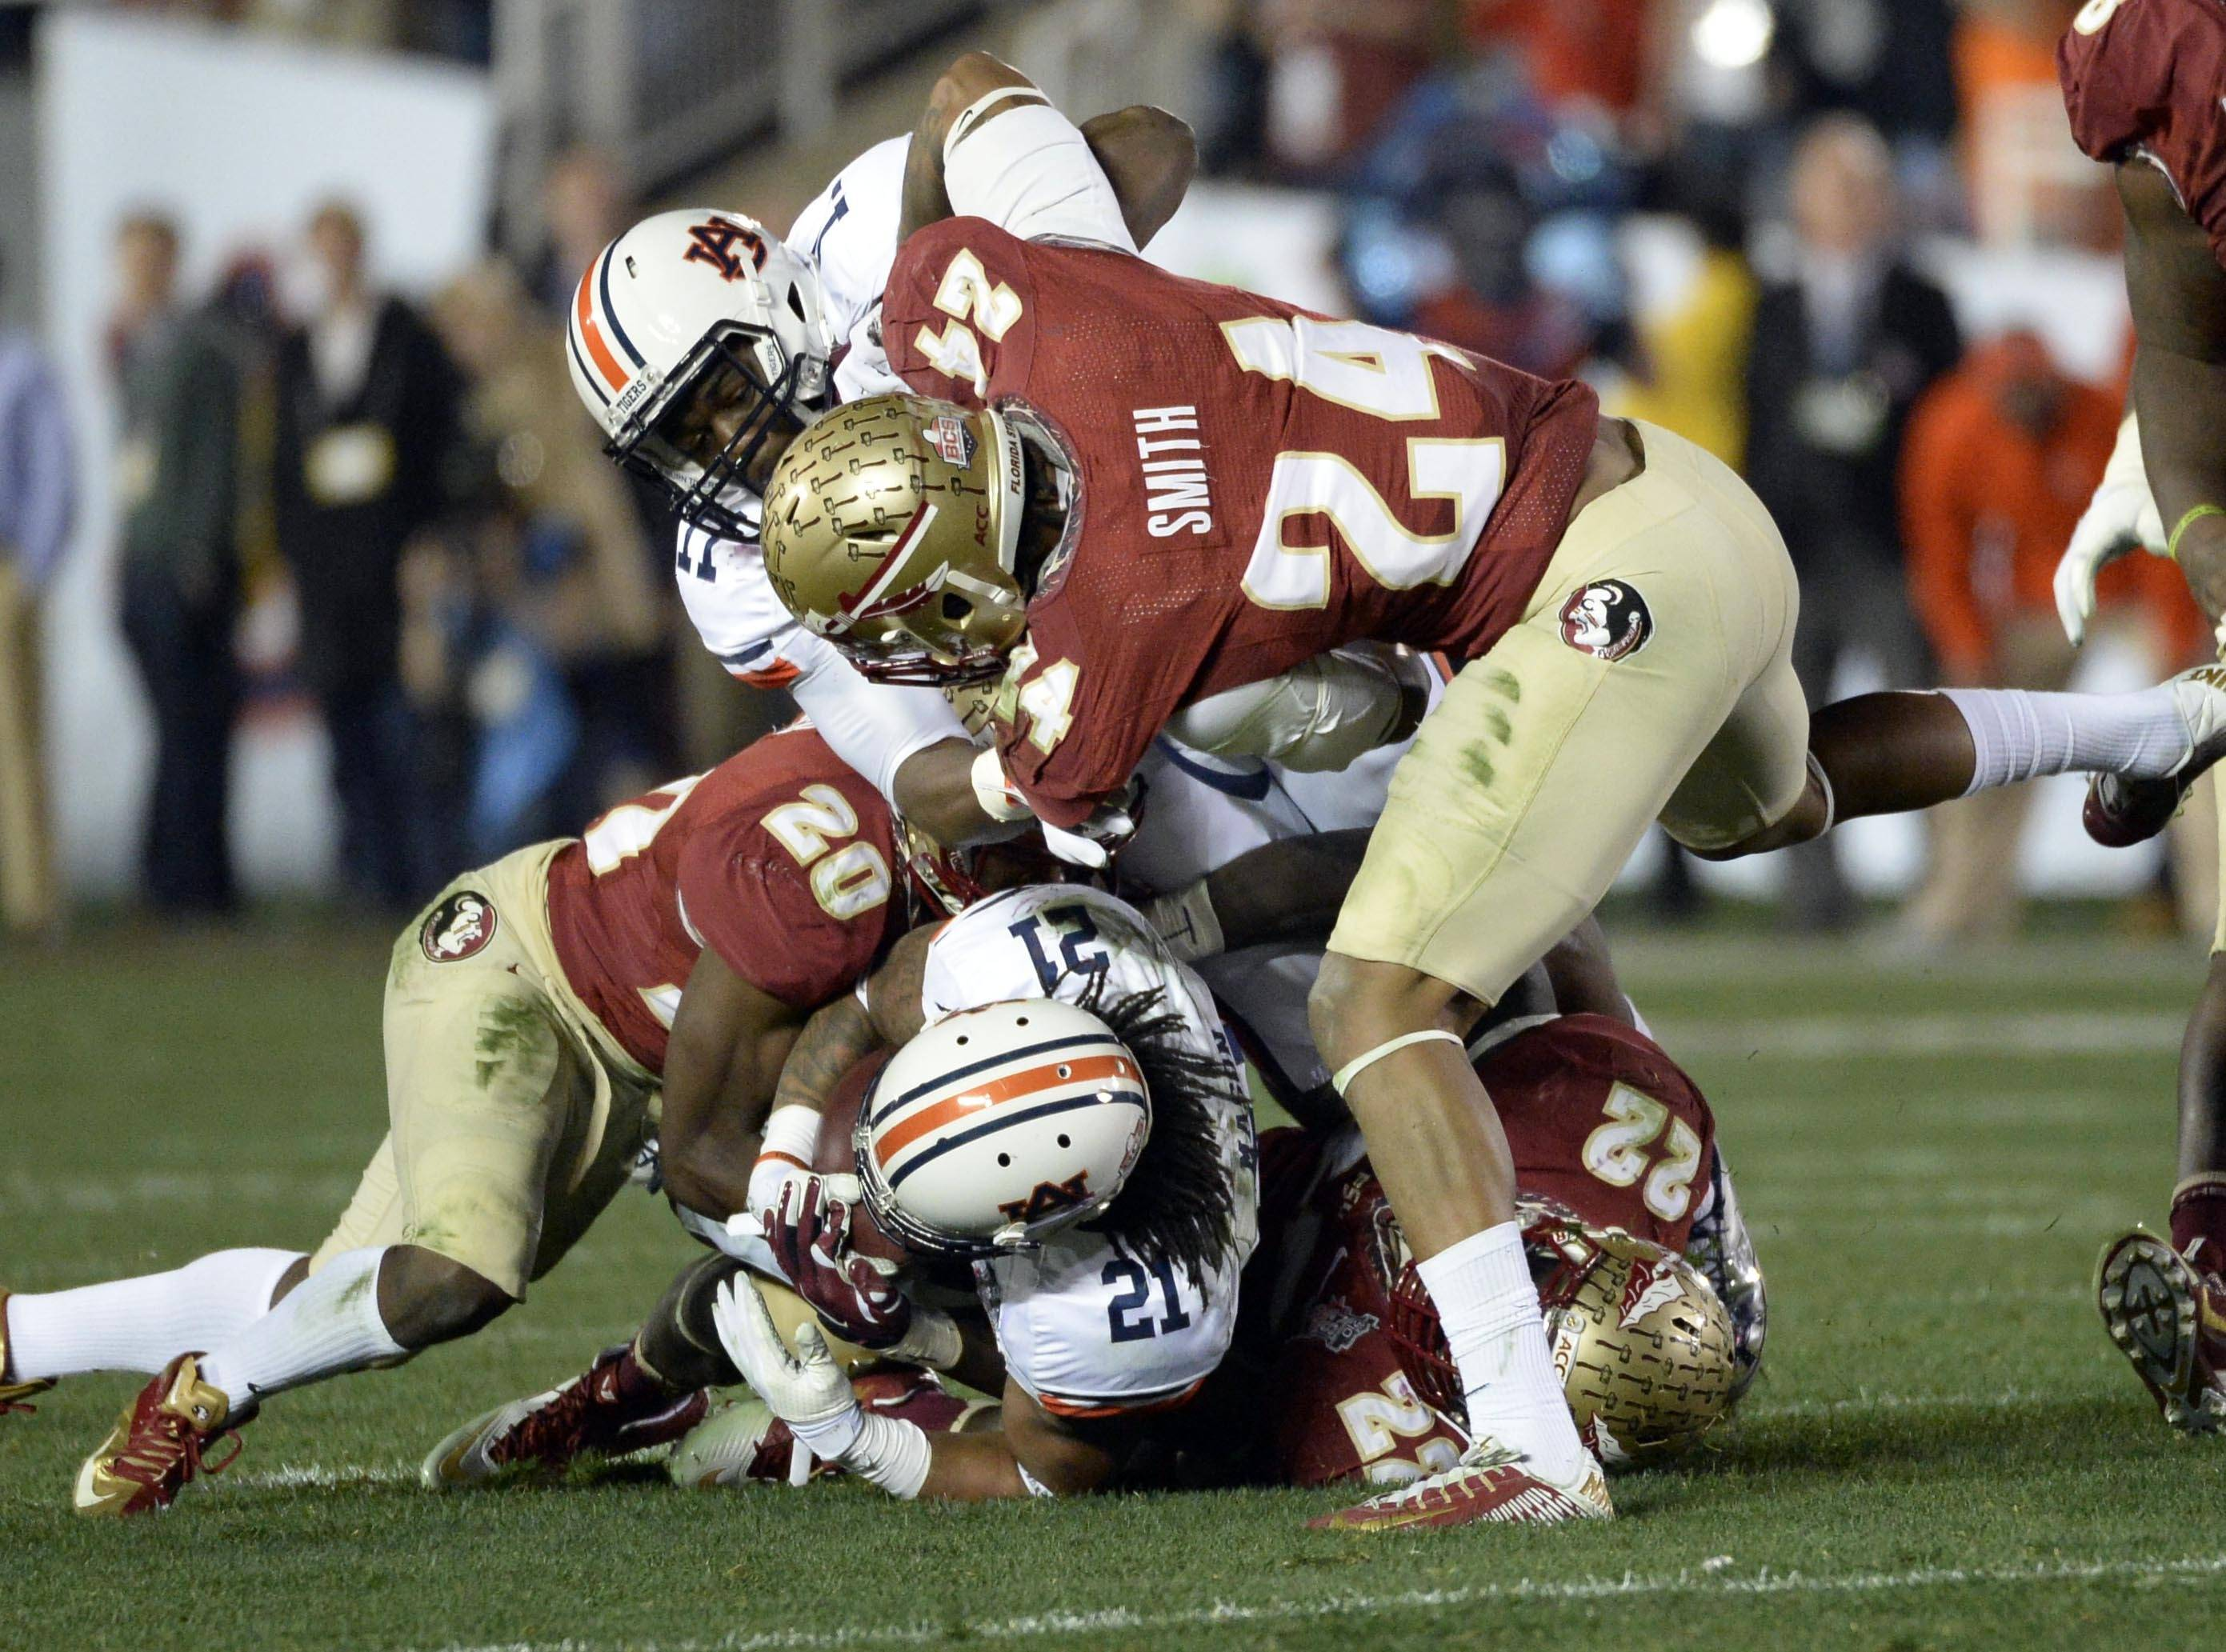 Jan 6, 2014; Pasadena, CA, USA; Florida State Seminoles defensive back Lamarcus Joyner (20) and linebacker Telvin Smith (22) and linebacker Terrance Smith (24) tackle Auburn Tigers running back Tre Mason (21) during the first half of the 2014 BCS National Championship game at the Rose Bowl.  Mandatory Credit: Richard Mackson-USA TODAY Sports